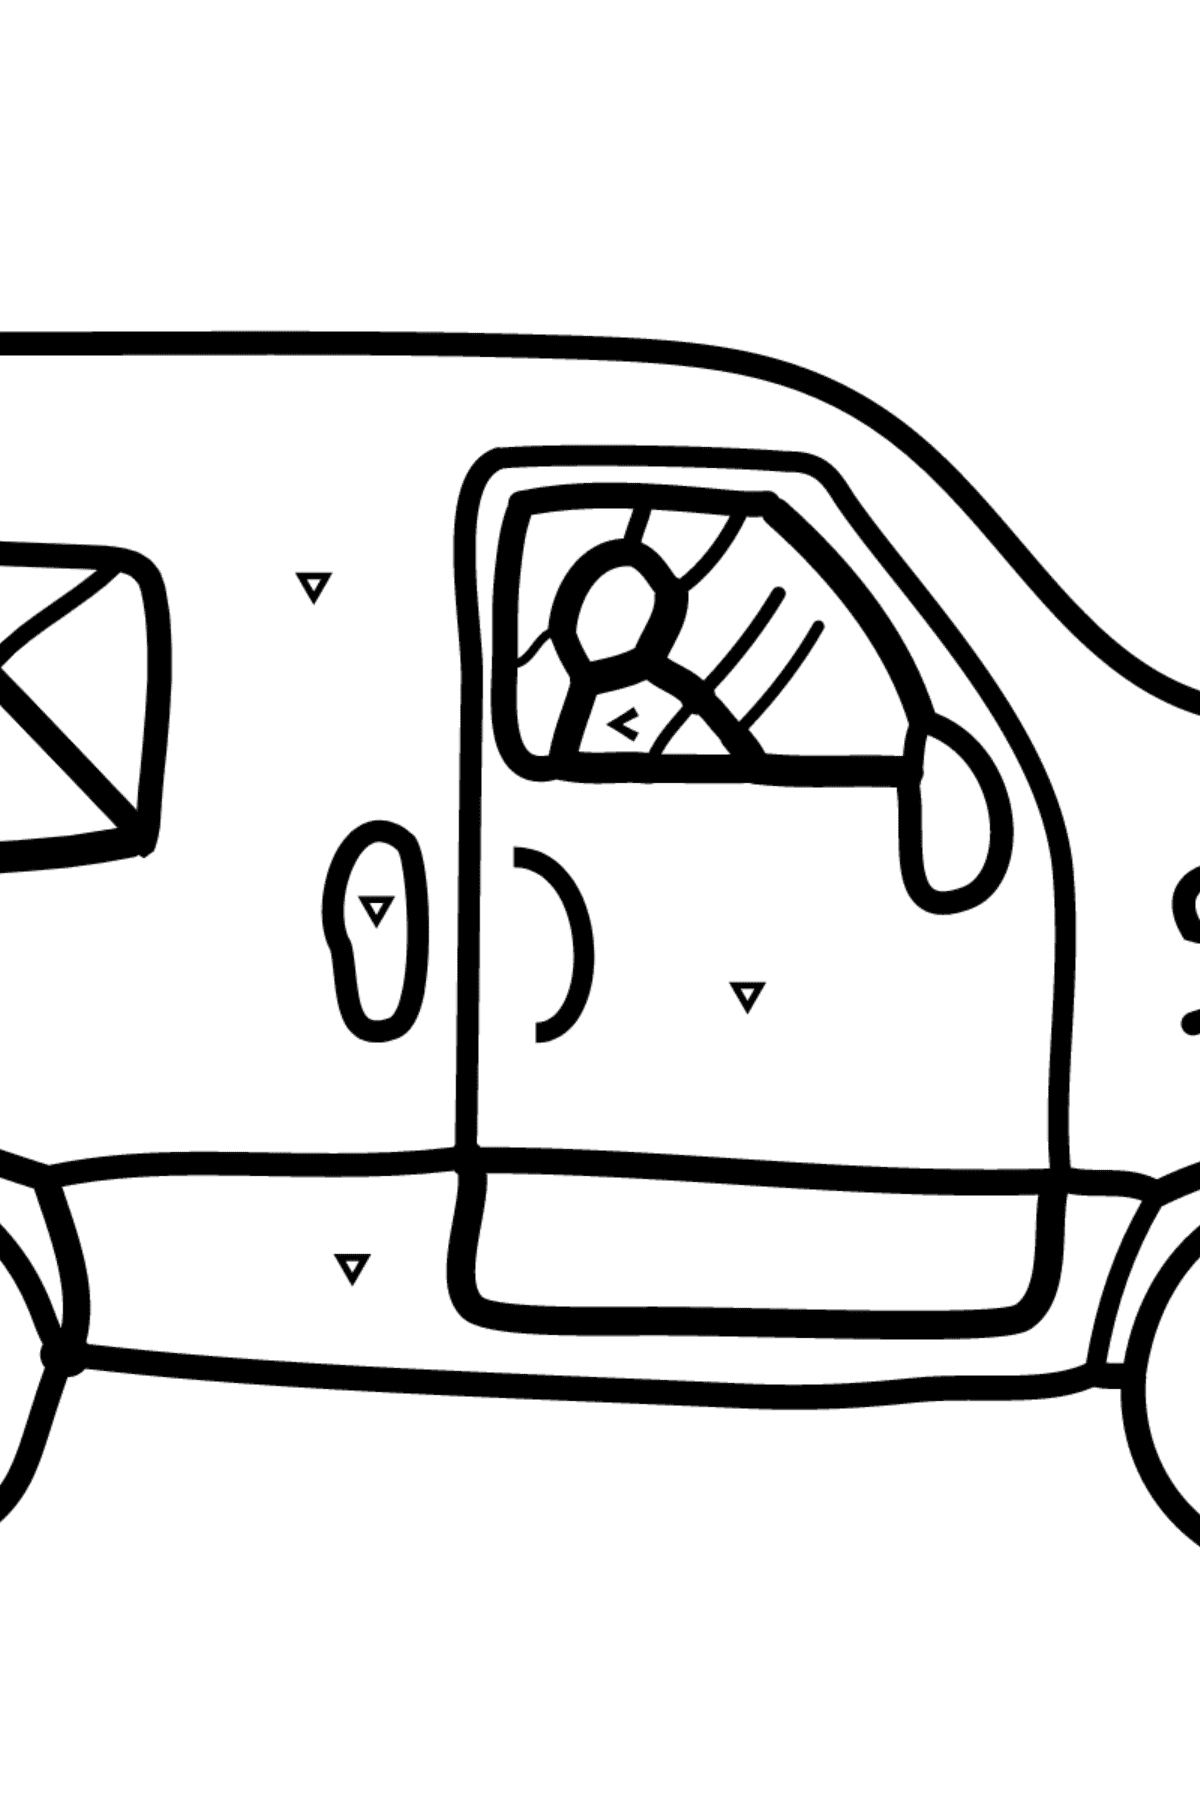 Coloring Page - A Car is Carrying Mail - Coloring by Symbols for Children